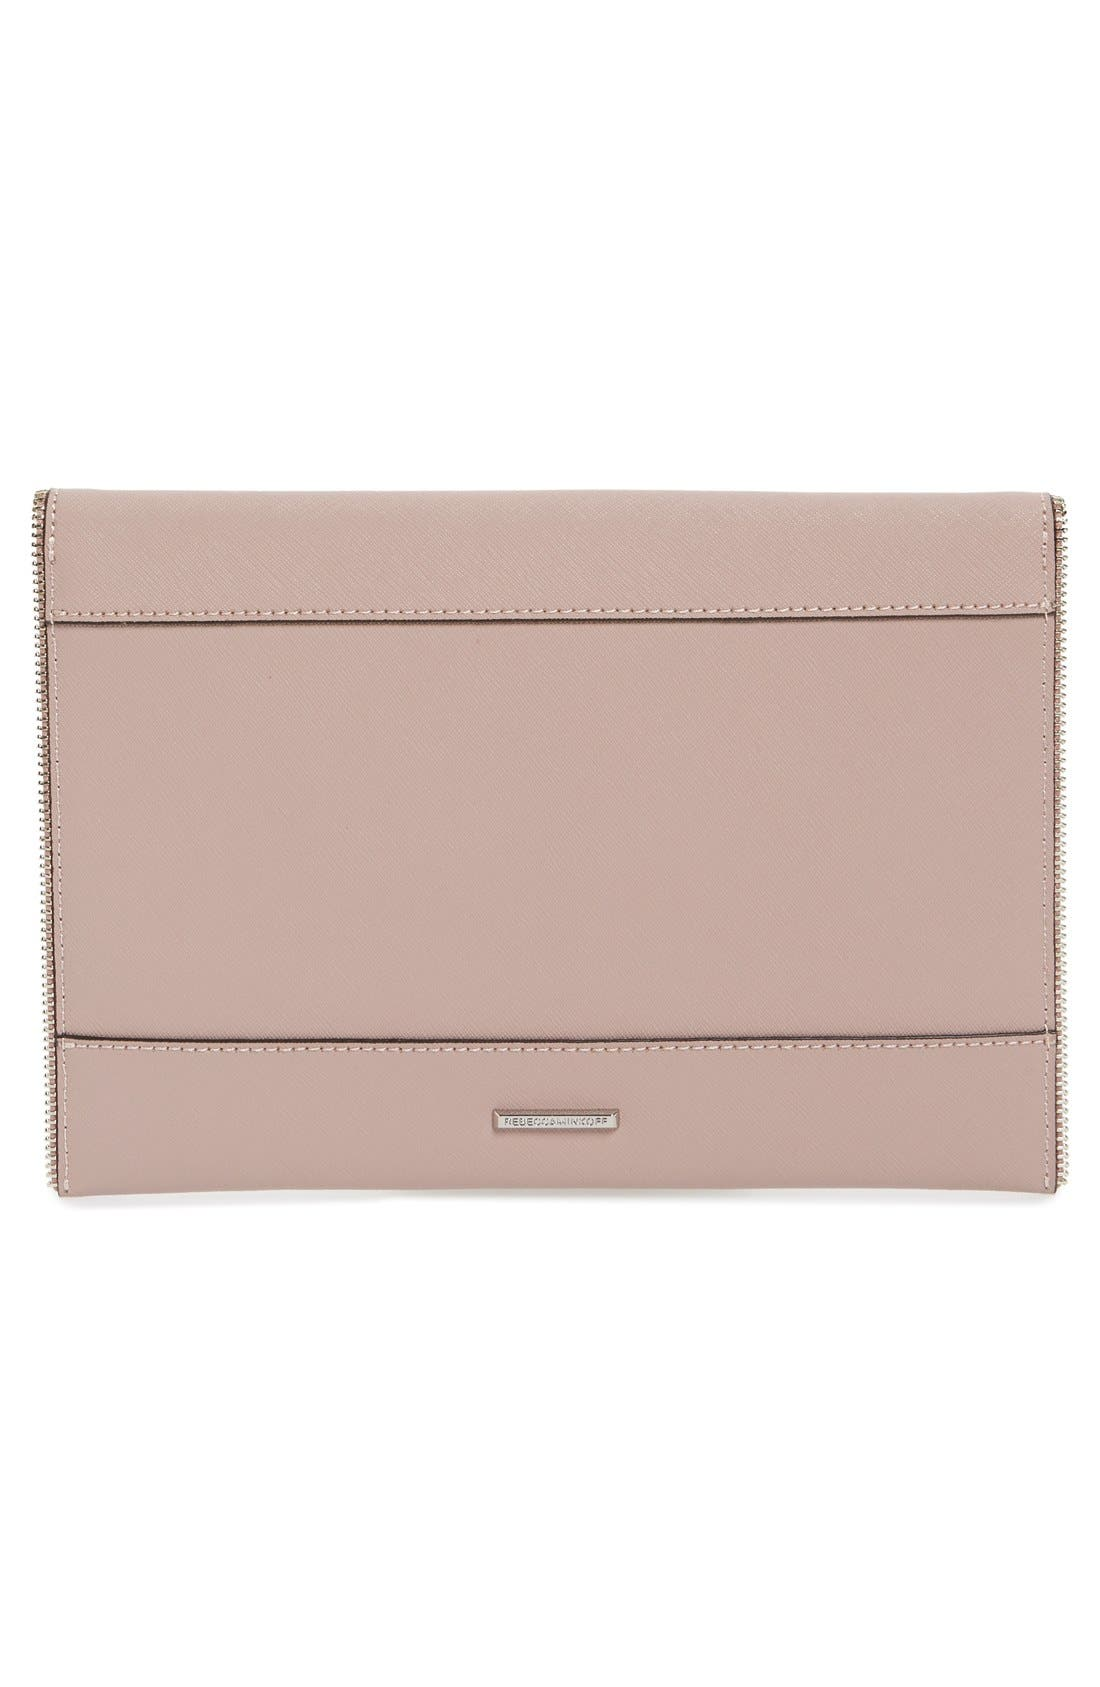 Alternate Image 3  - Rebecca Minkoff 'Leo' Envelope Clutch